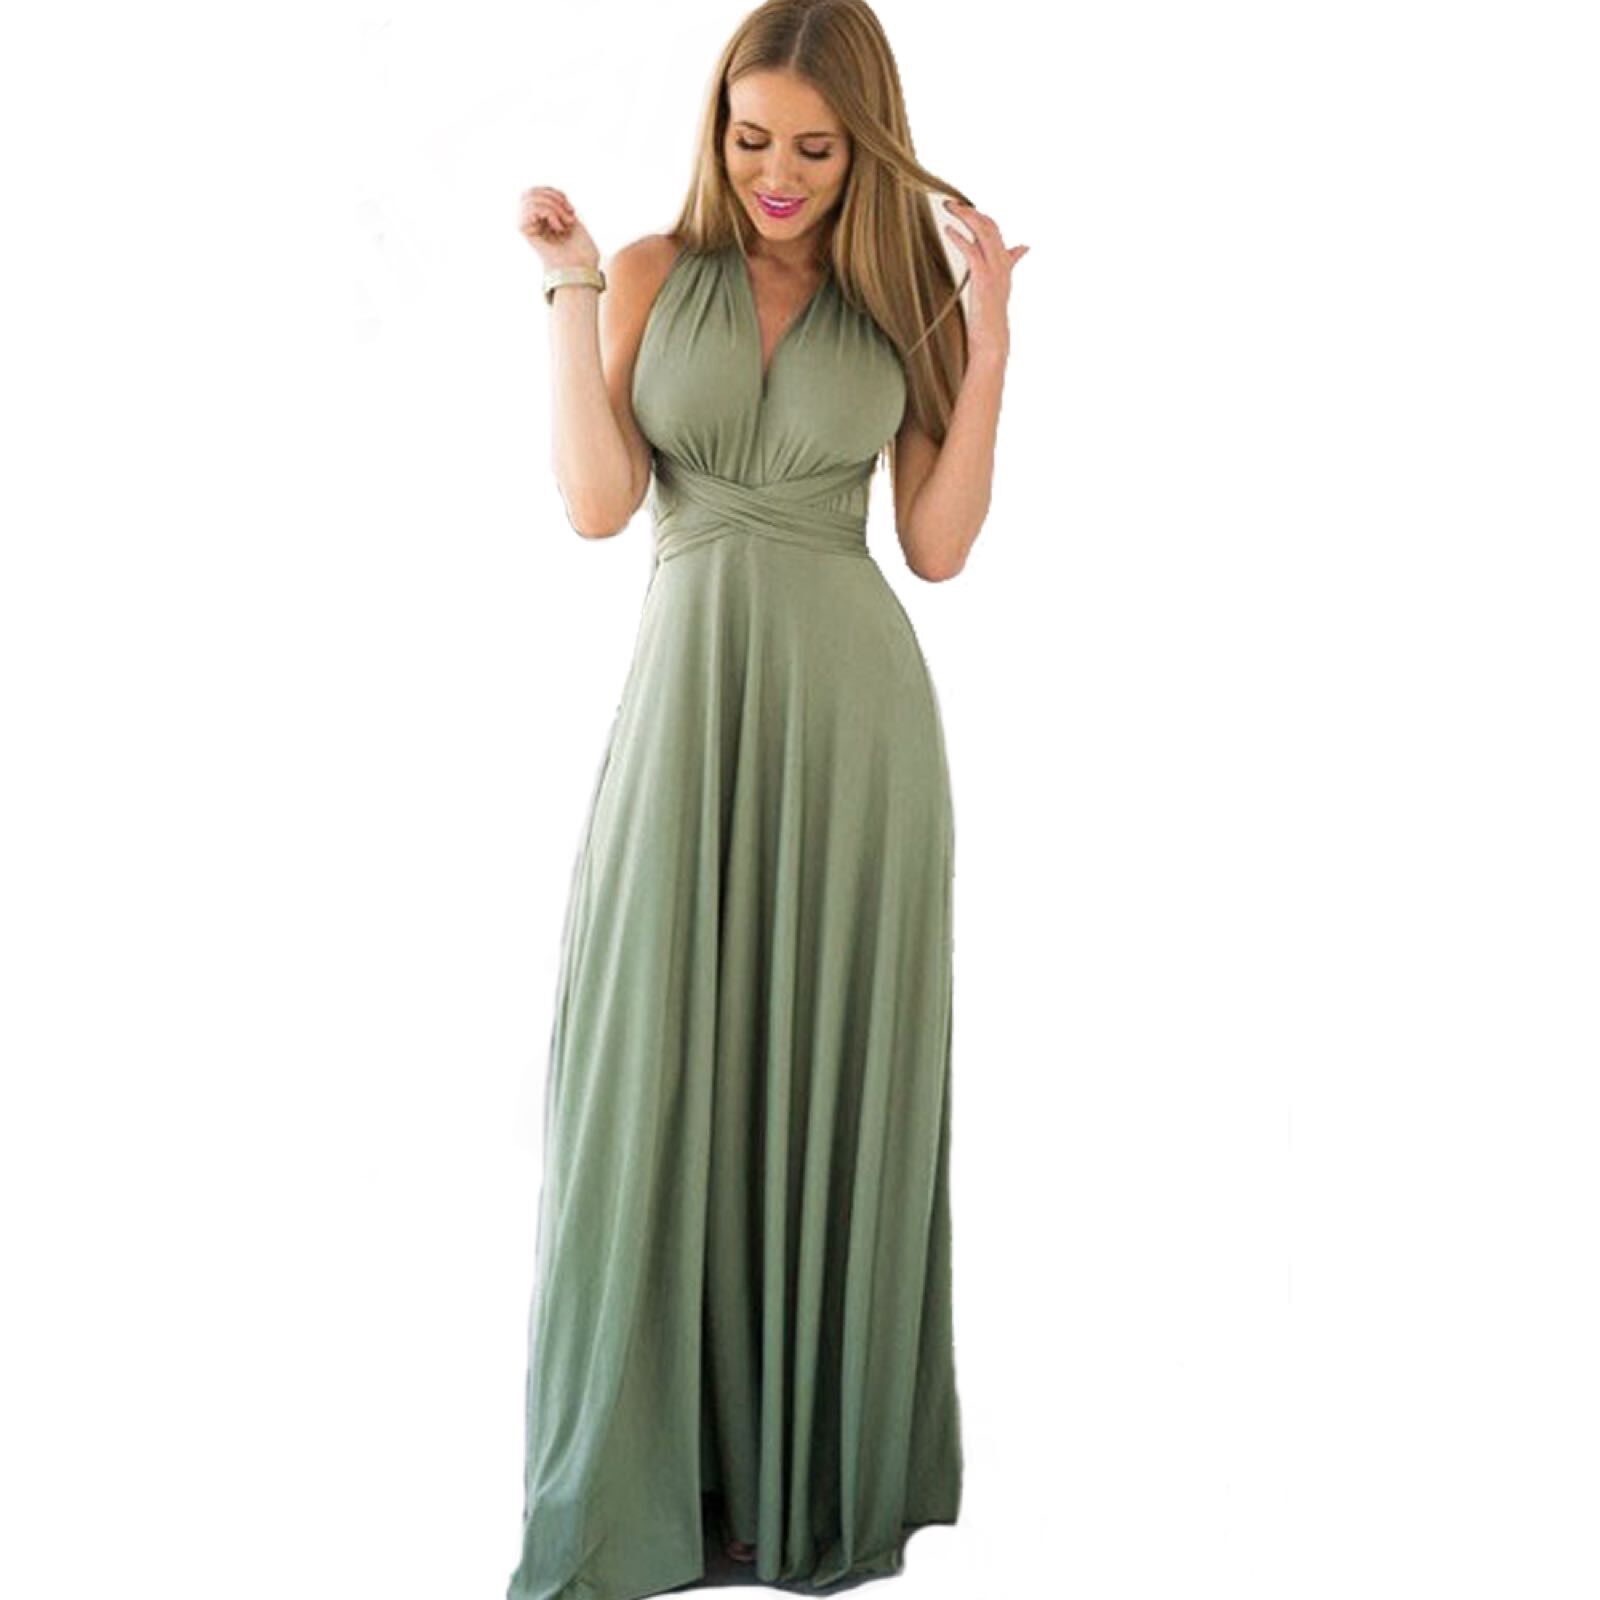 Women Multiway Wrap Convertible Boho Maxi Club Dress Sexy Bandage Long Dress Party Bridesmaids Infinity Robe Longue Femme Dress Платье